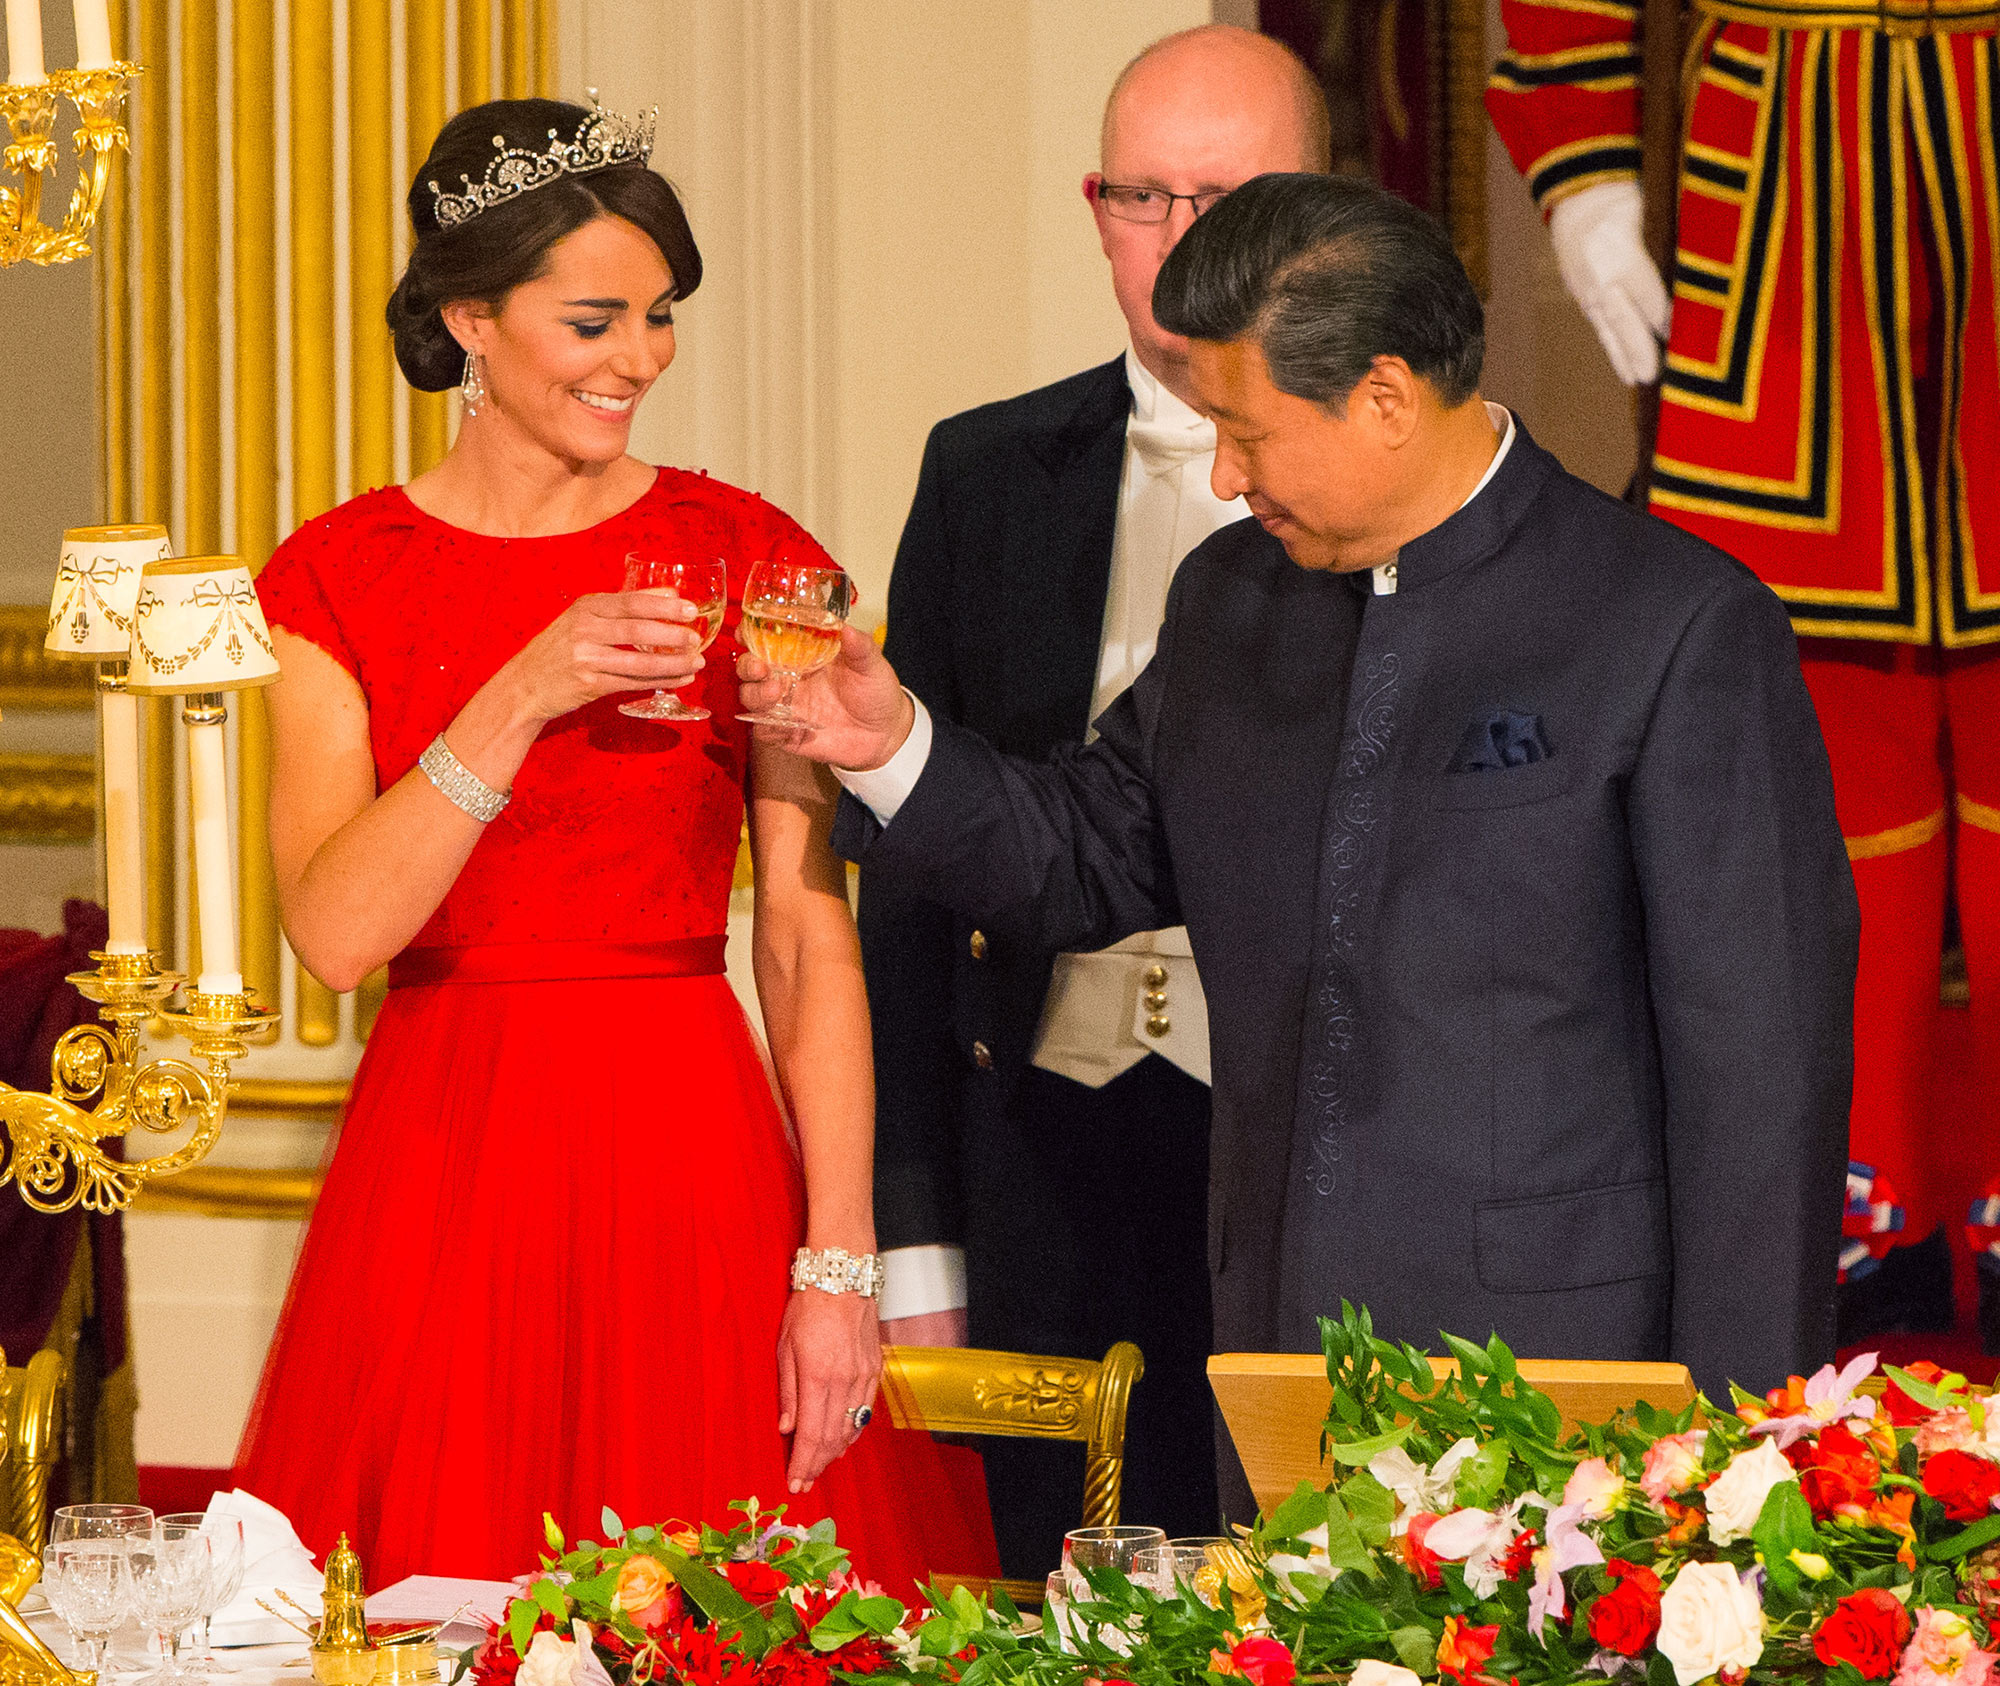 LONDON, ENGLAND - OCTOBER 20: Chinese President Xi Jinping and Catherine, Duchess of Cambridge attend a state banquet at Buckingham Palace on October 20, 2015 in London, England. The President of the People's Republic of China, Mr Xi Jinping and his wife, Madame Peng Liyuan, are paying a State Visit to the United Kingdom as guests of the Queen. They will stay at Buckingham Palace and undertake engagements in London and Manchester. The last state visit paid by a Chinese President to the UK was Hu Jintao in 2005. (Photo by Dominic Lipinski - WPA Pool /Getty Images)